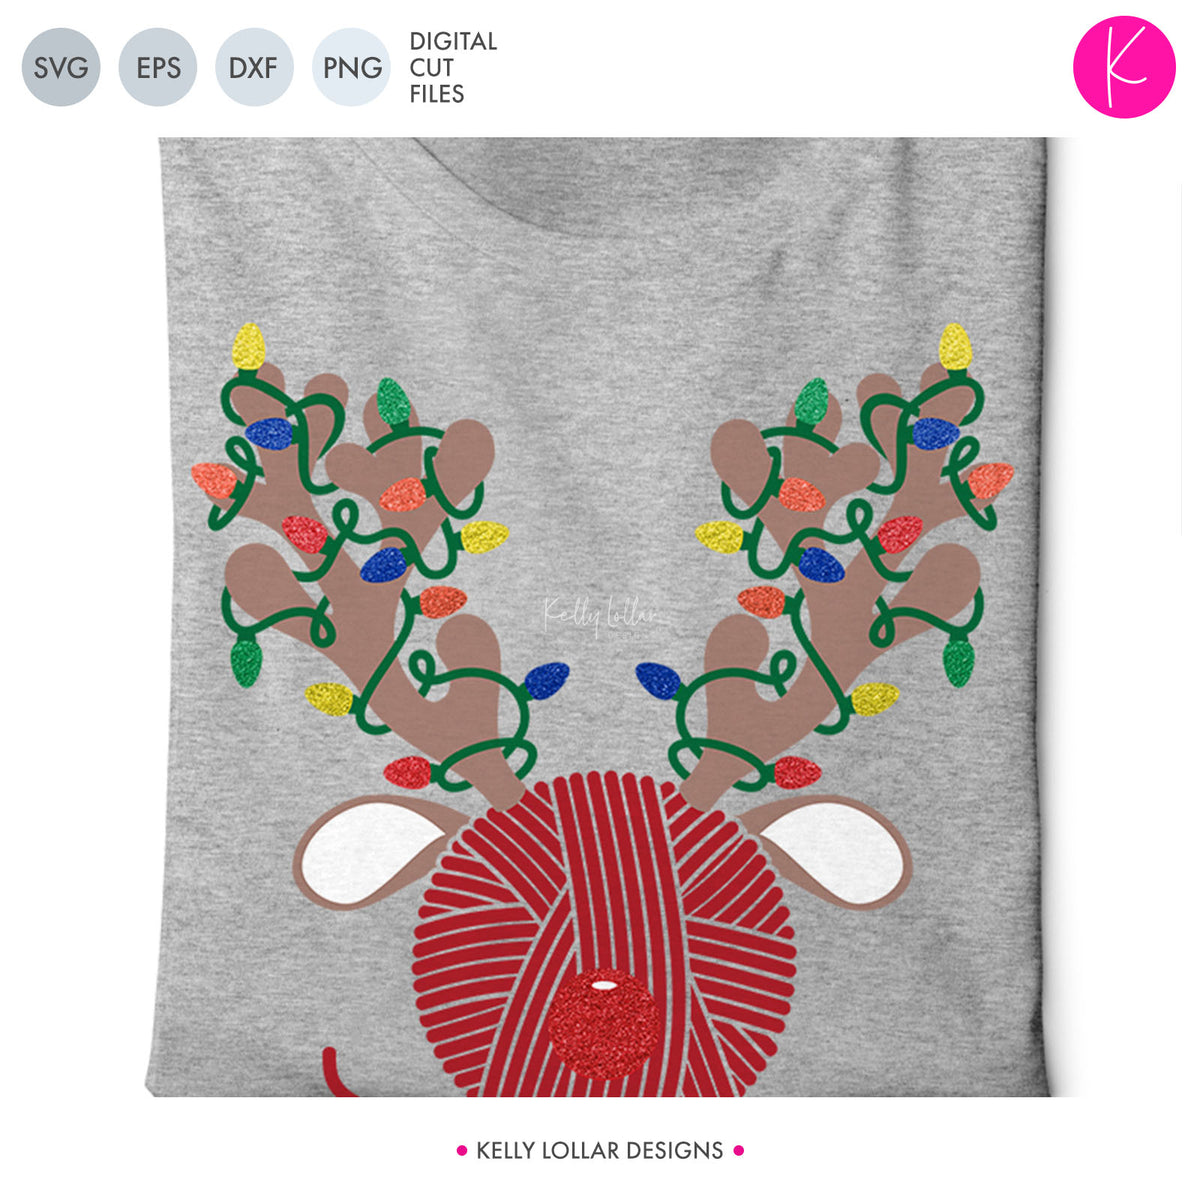 Crochet & Knitting Yarn Reindeer | SVG DXF EPS PNG Cut Files